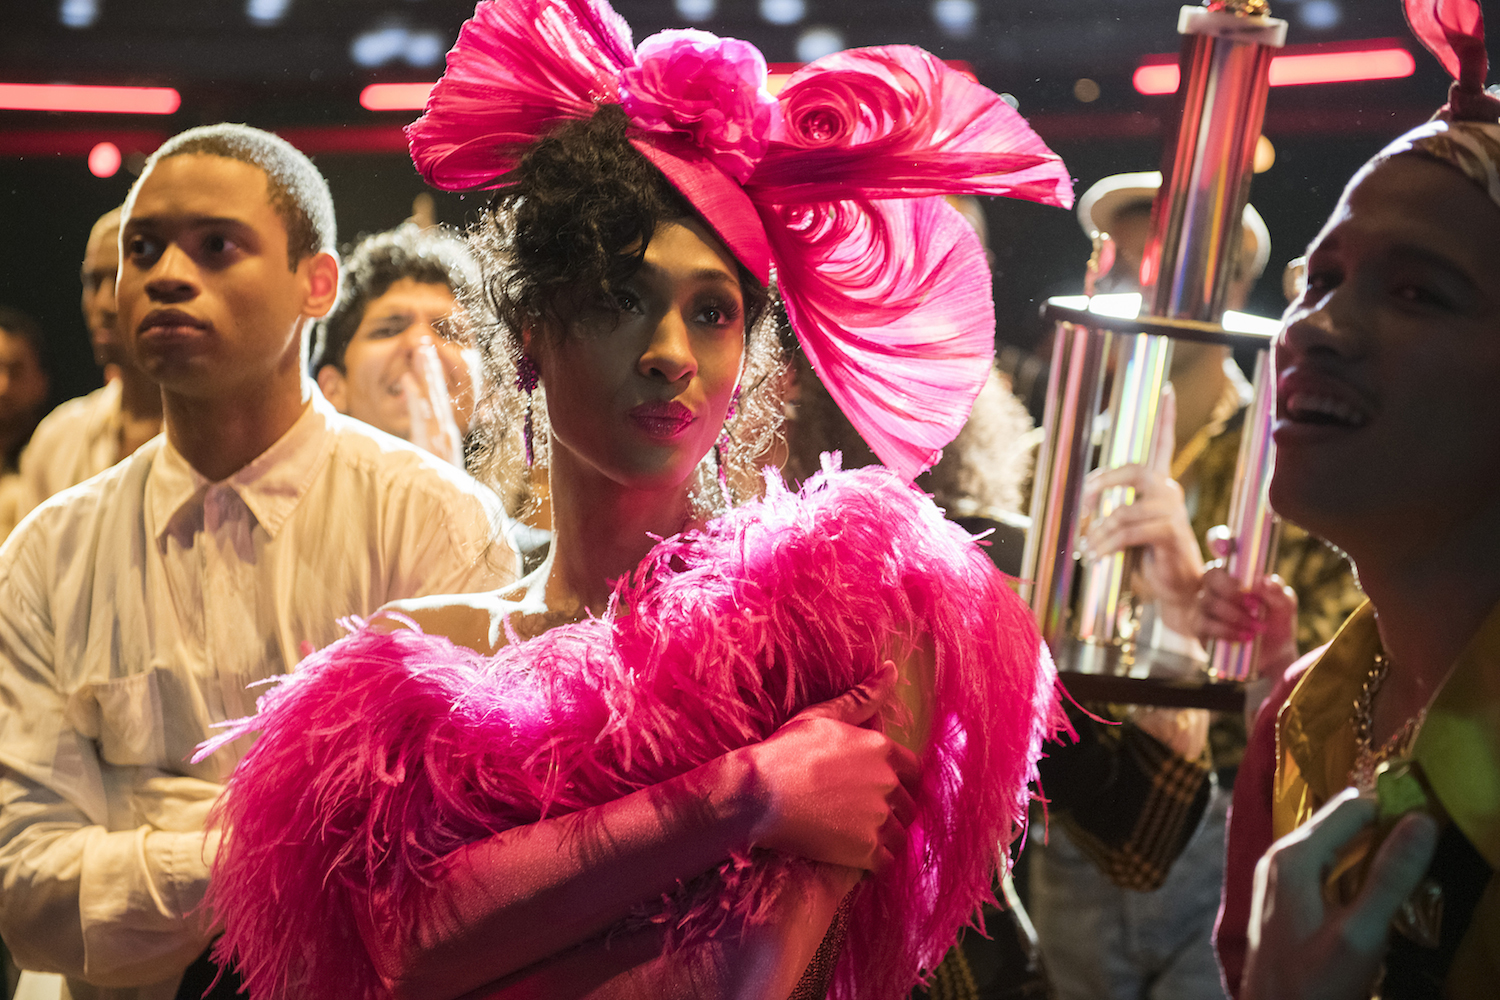 'Pose' Season 2 Set to Arrive This Summer on FX